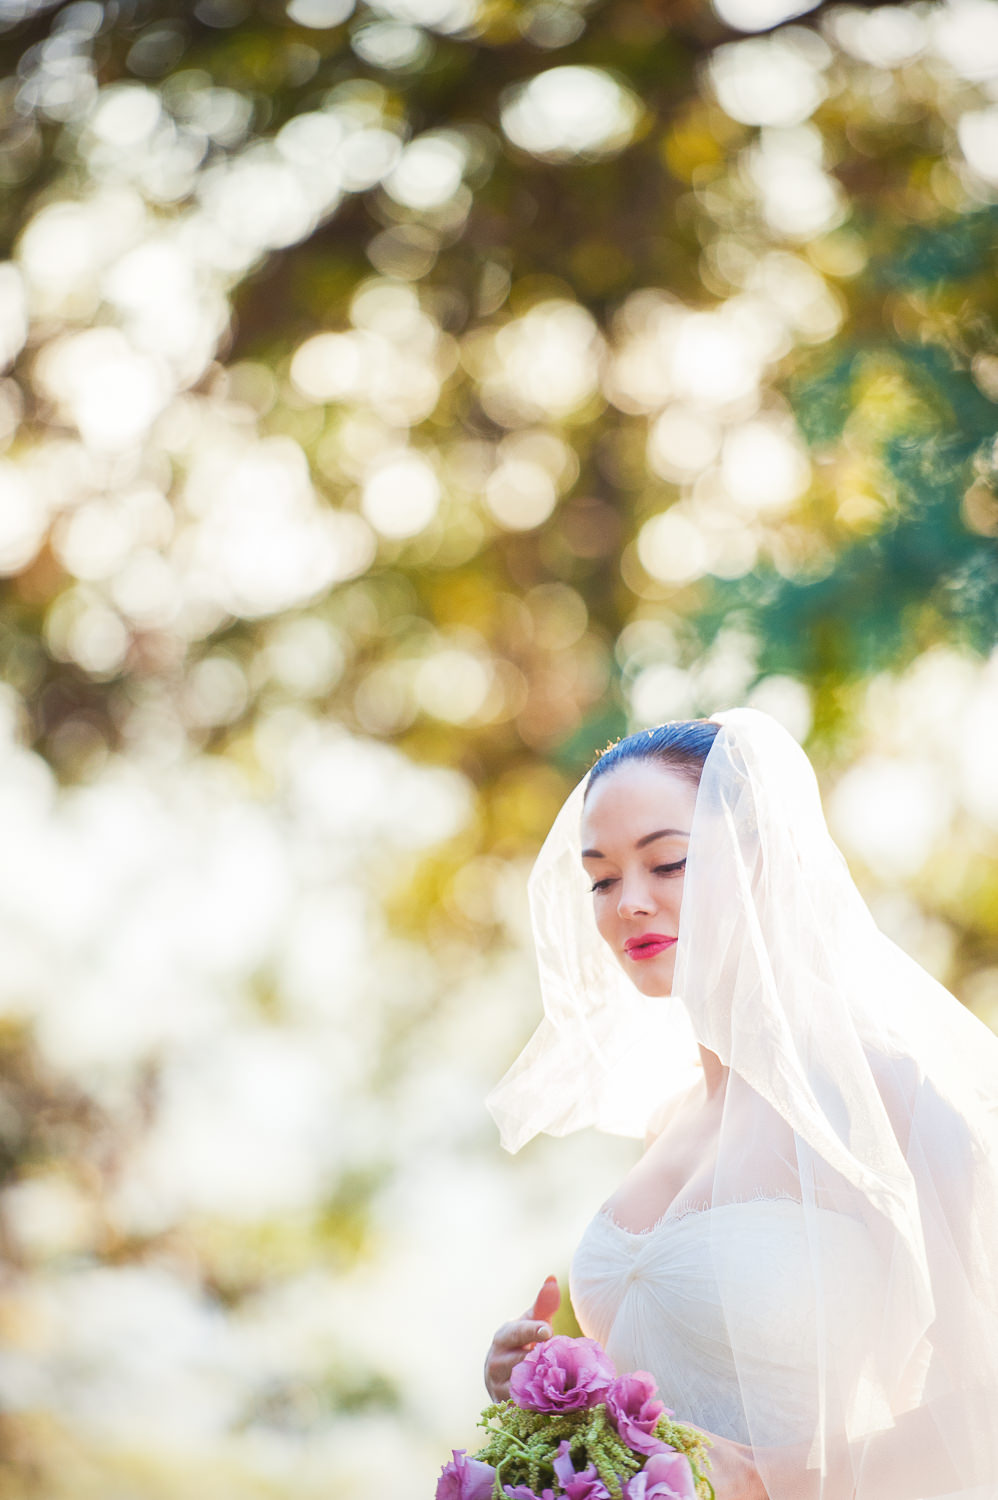 Rose McGowan Wedding at Paramour Estate - Bride under the trees holding her flowers